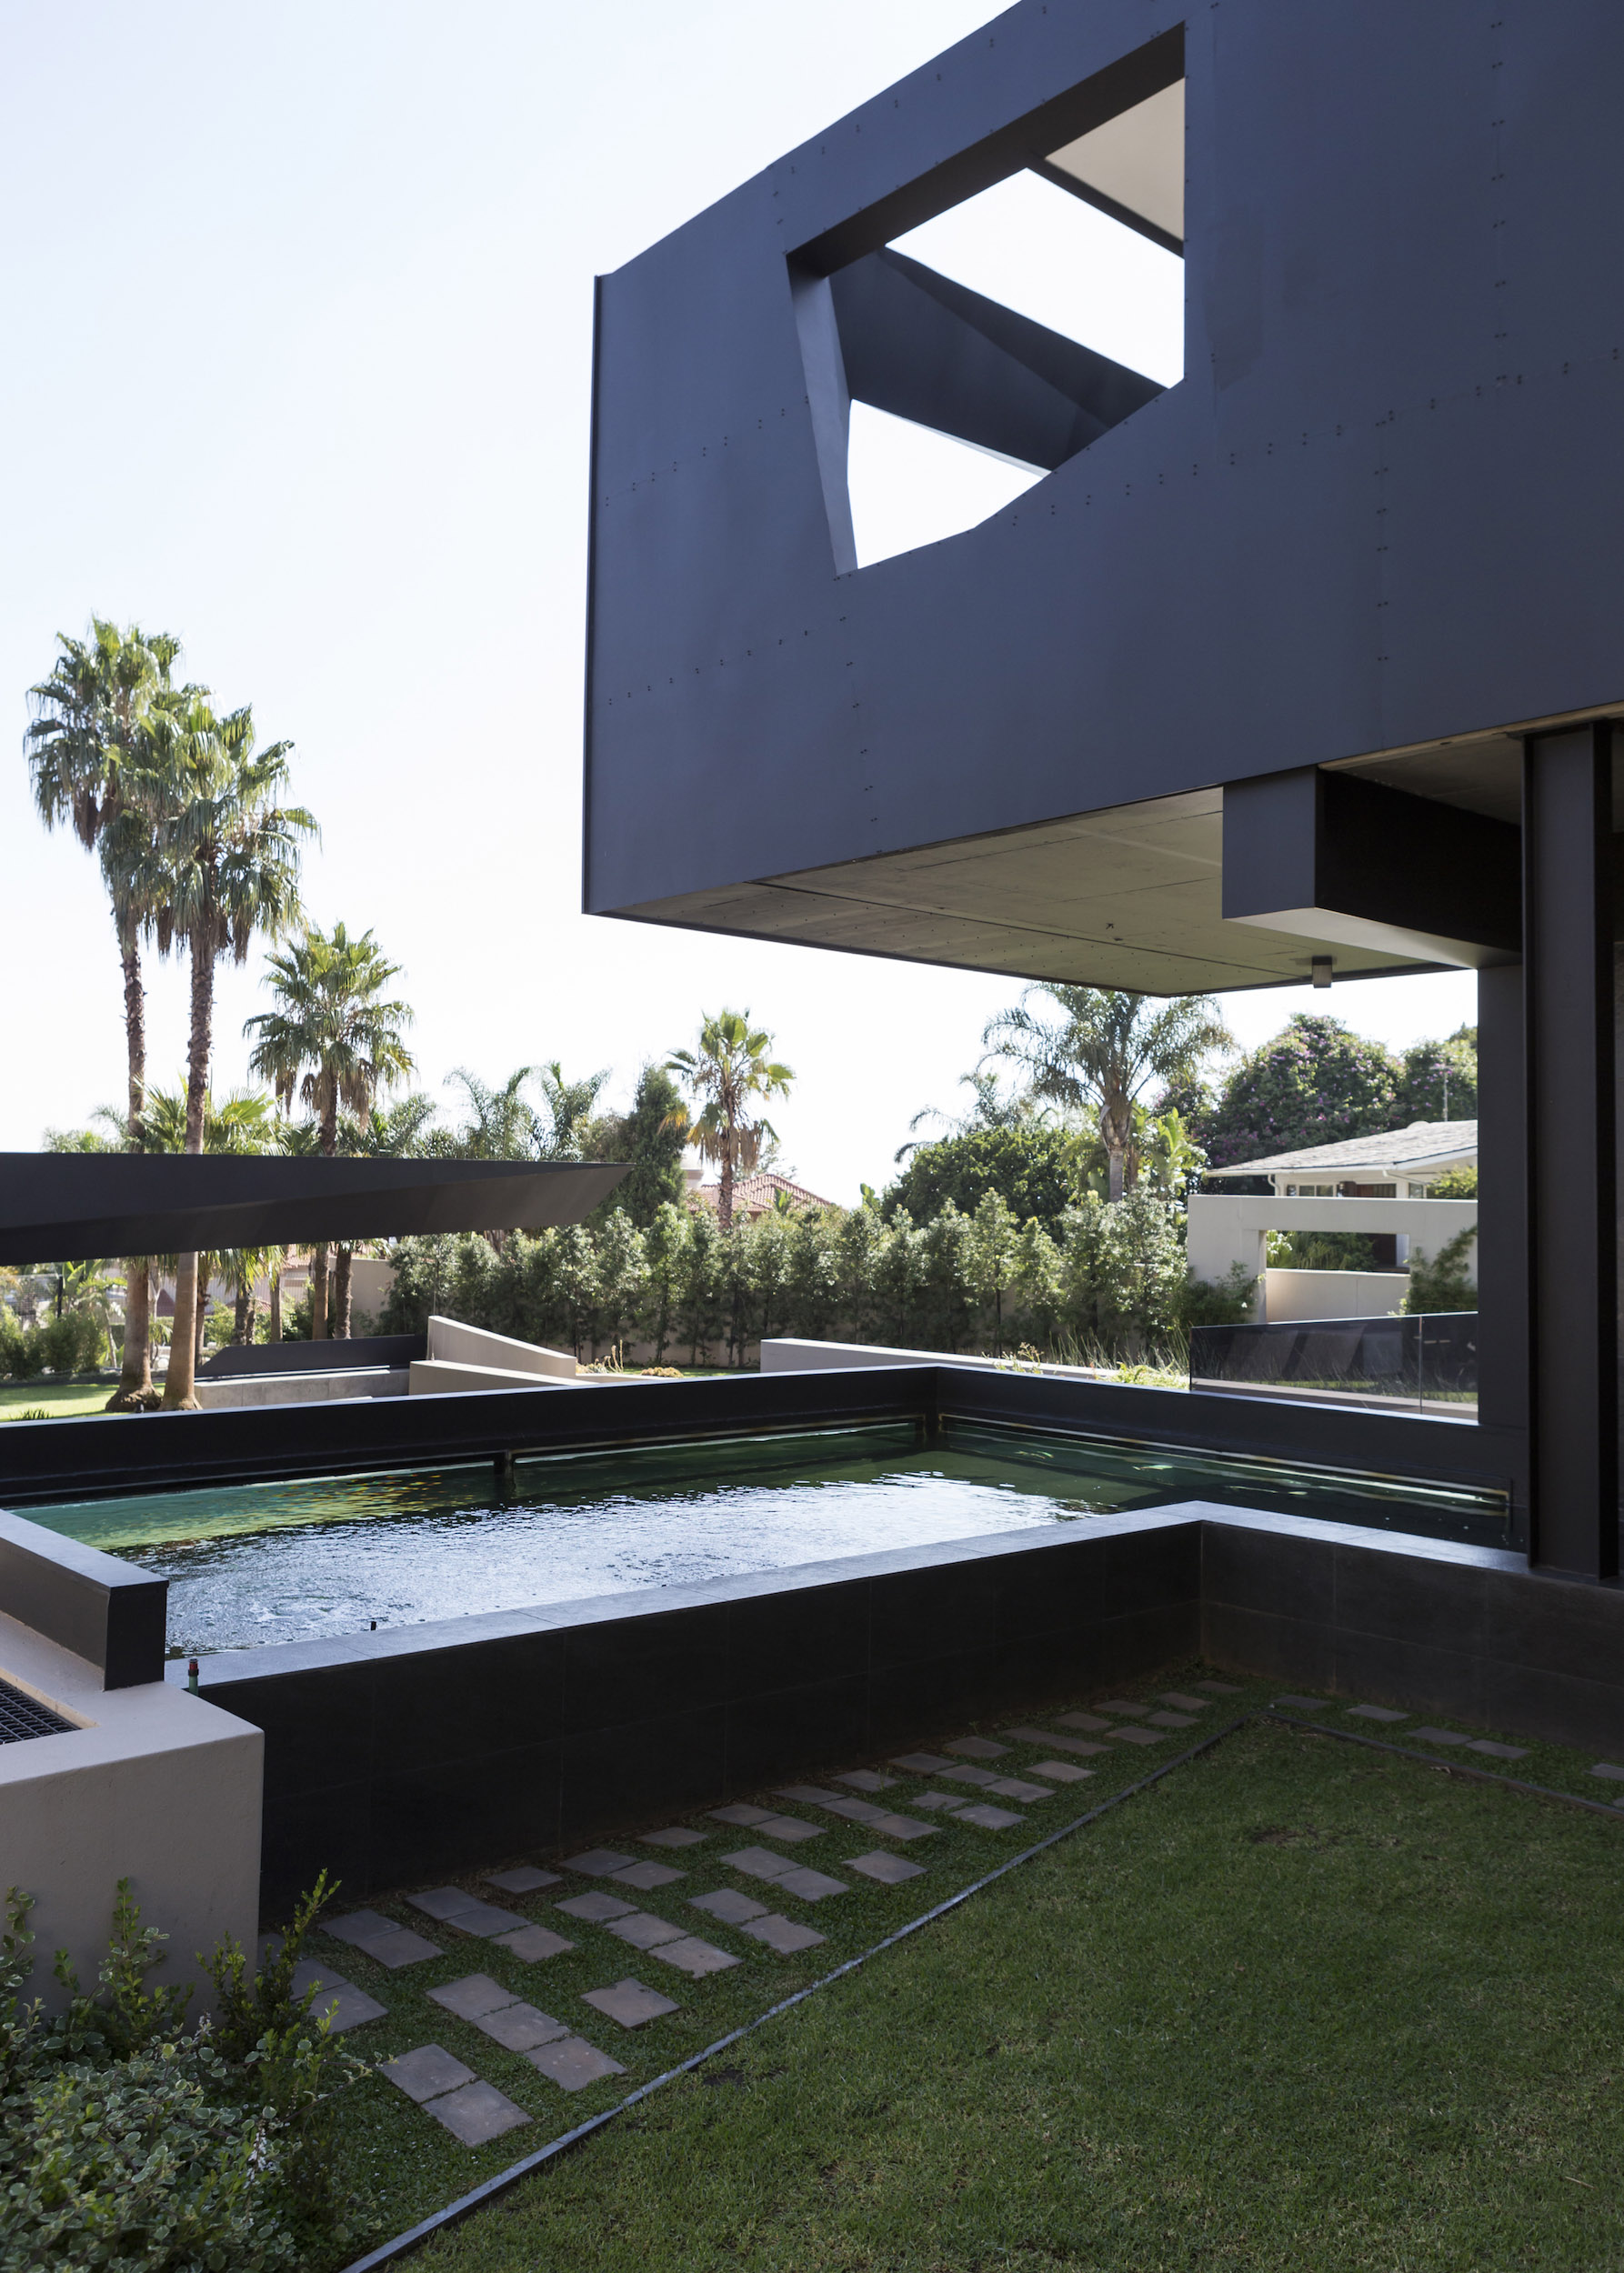 Kloof Road Masterpiece House in Johannesburg by Nico van der Meulen Architects-14